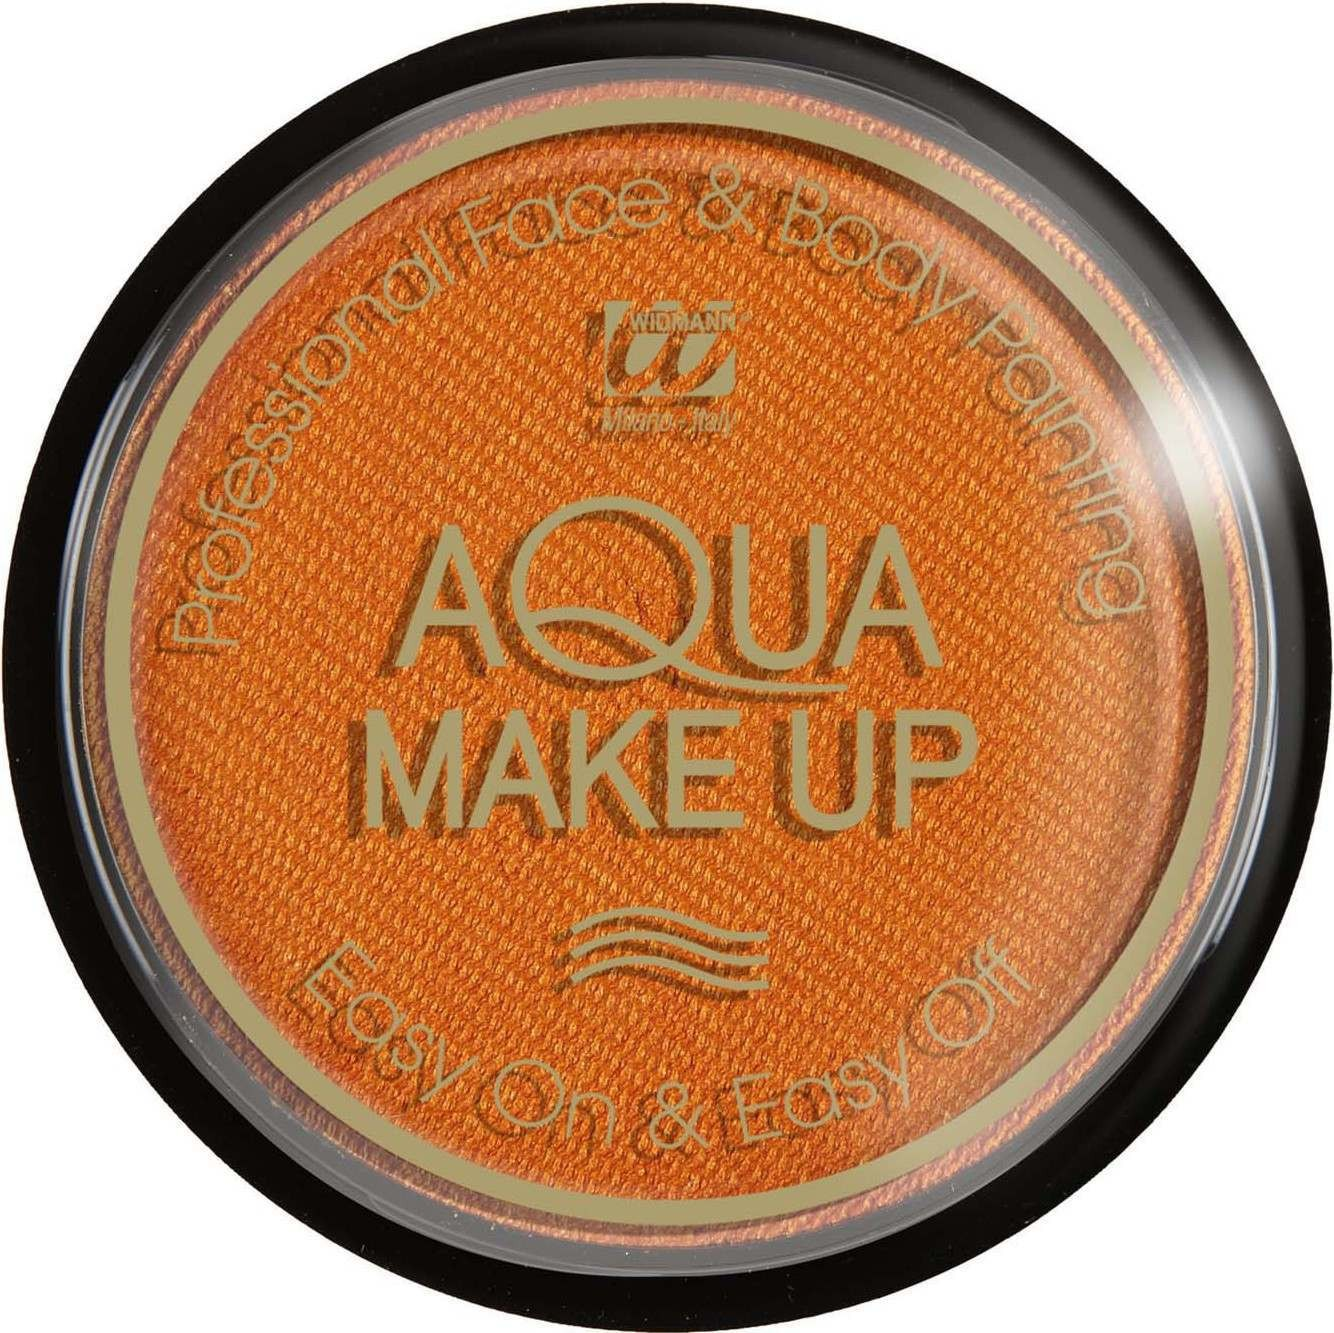 Aqua Makeup 15G - Metallic Orange Makeup - (Orange)